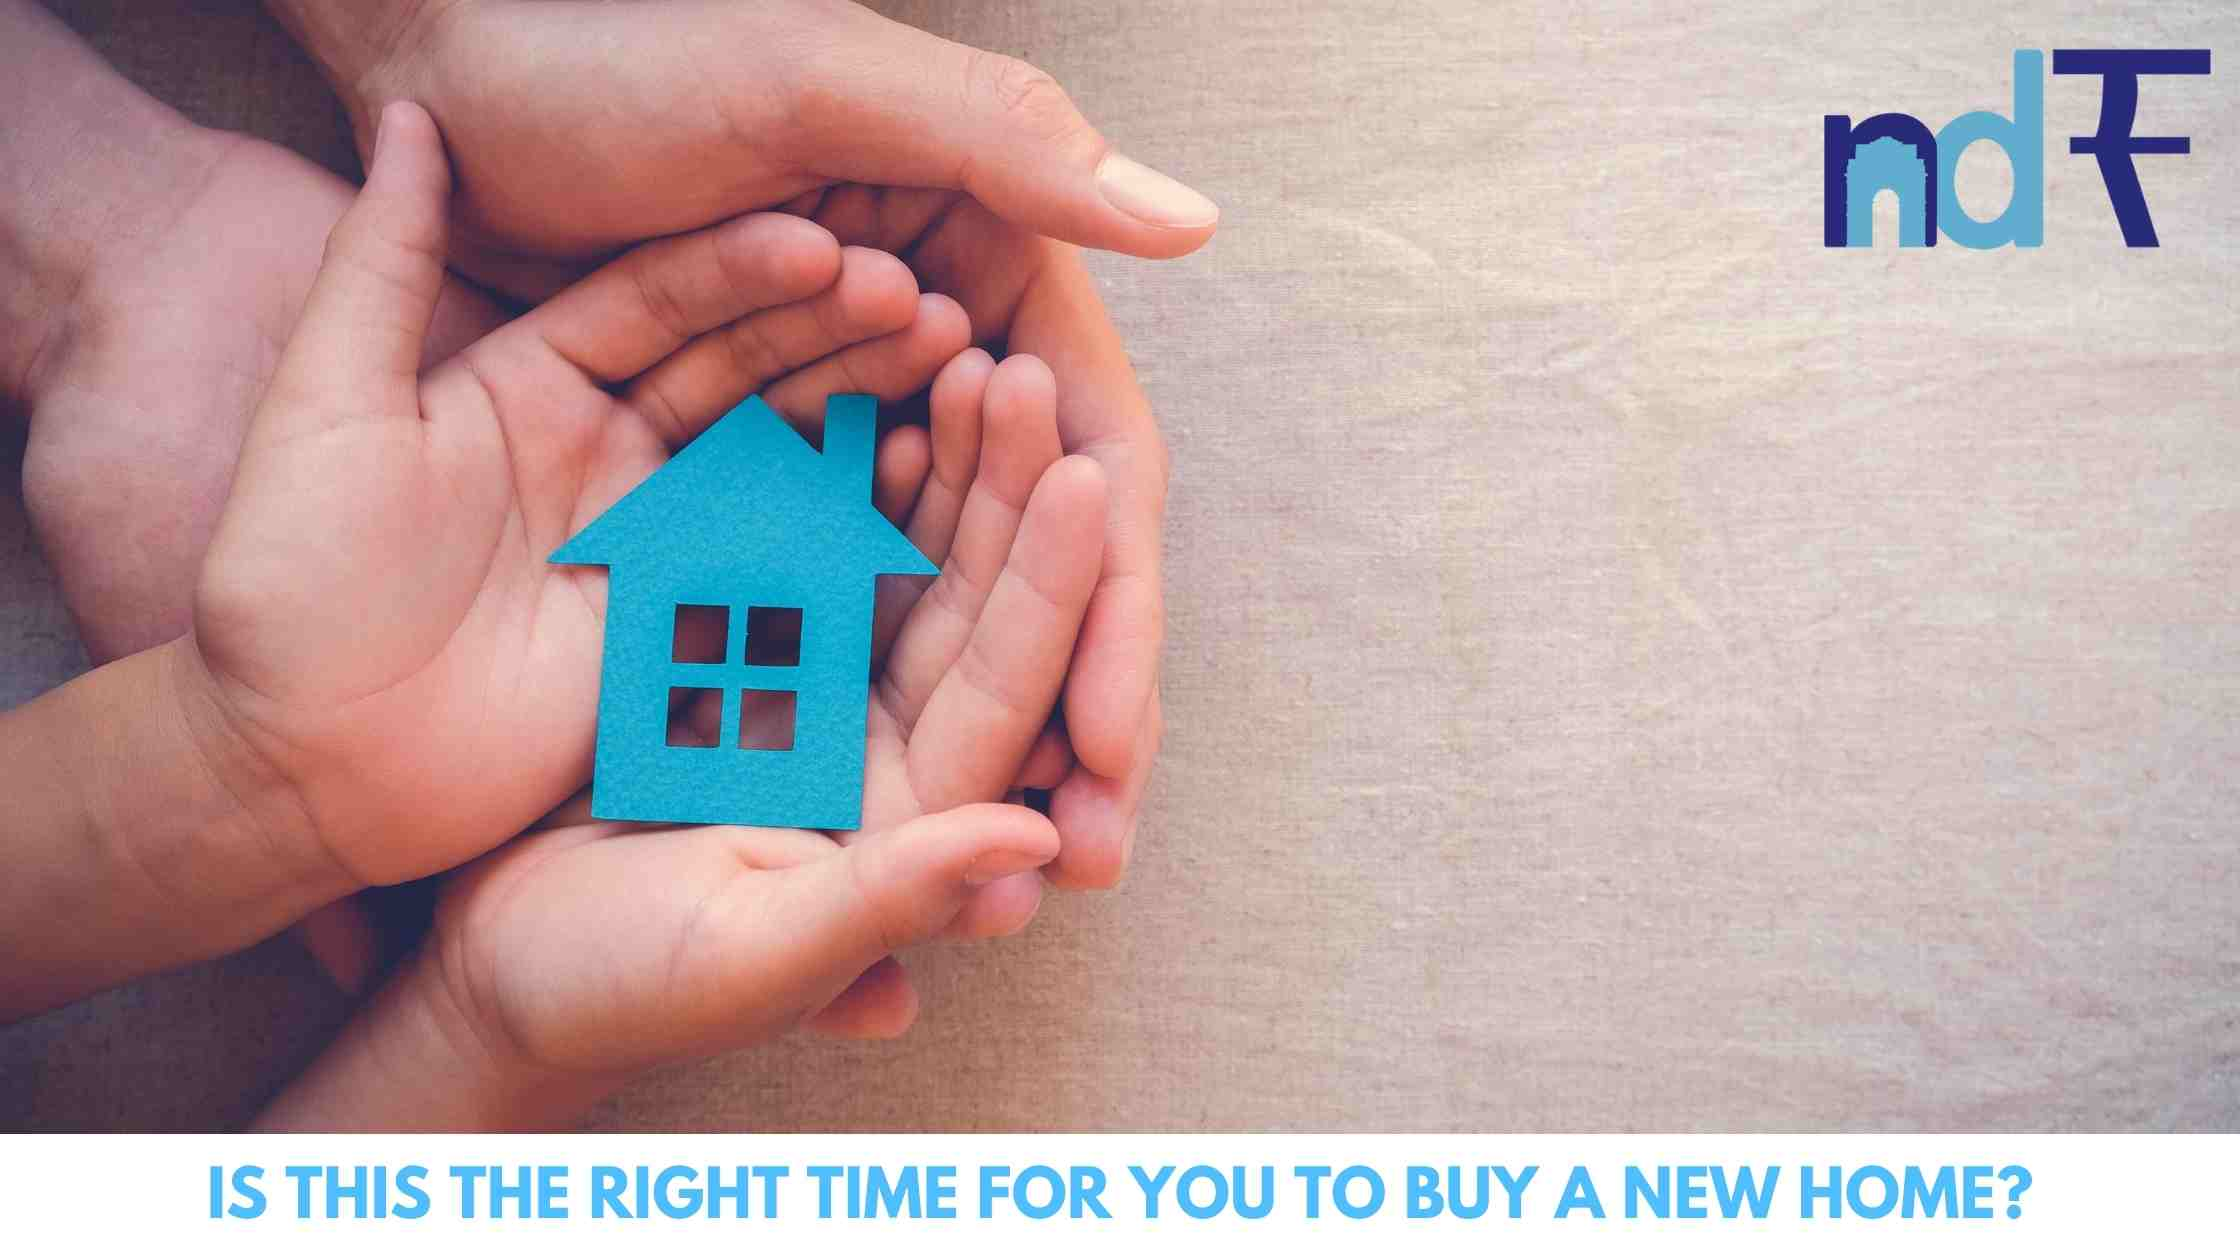 Is this the right time for you to buy a new home?